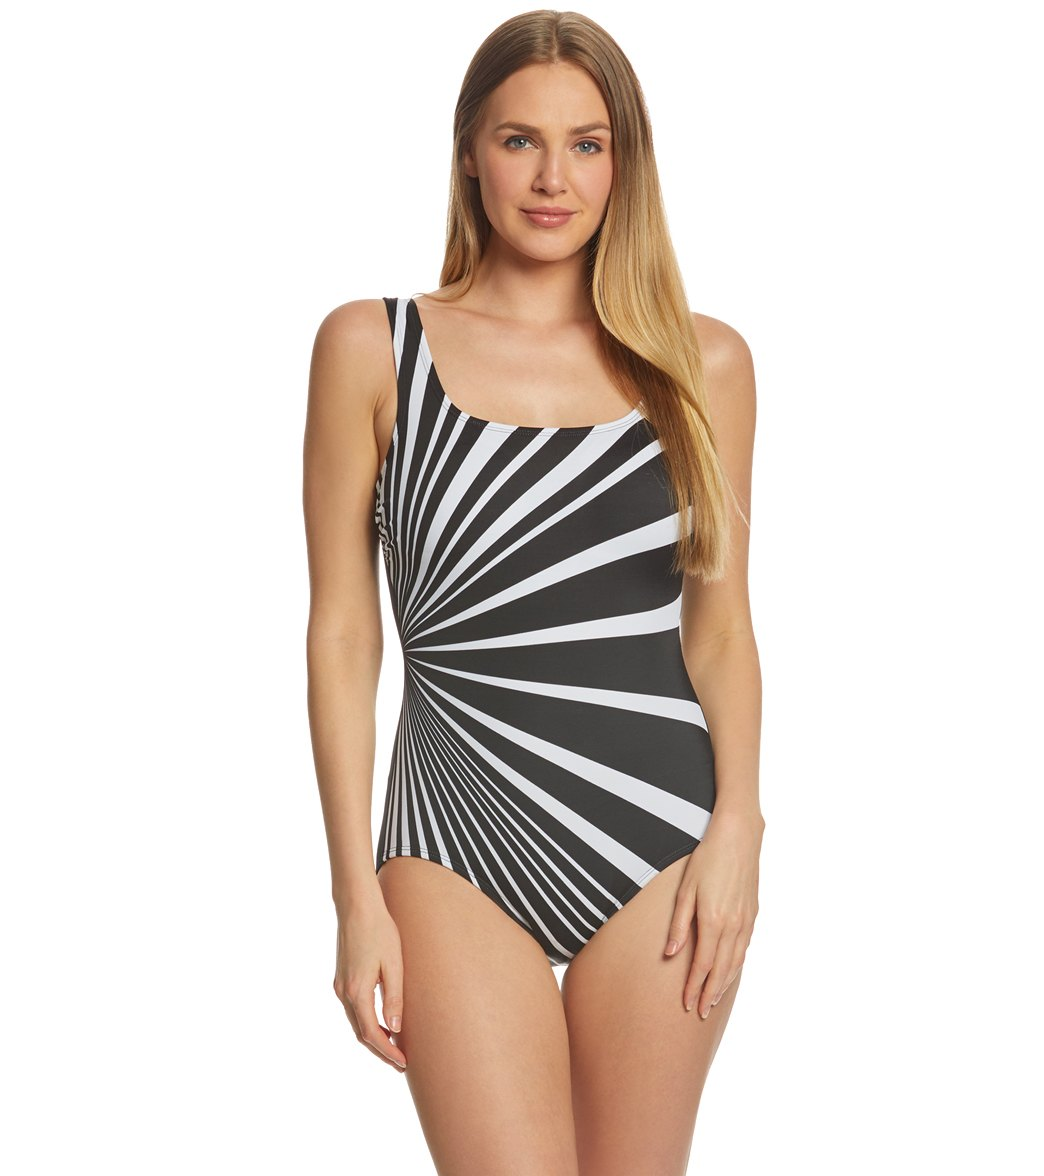 41dfadff55449 Reebok Dynamic Moves Women's Scoop Back Chlorine Resistant One Piece  Swimsuit at SwimOutlet.com - Free Shipping